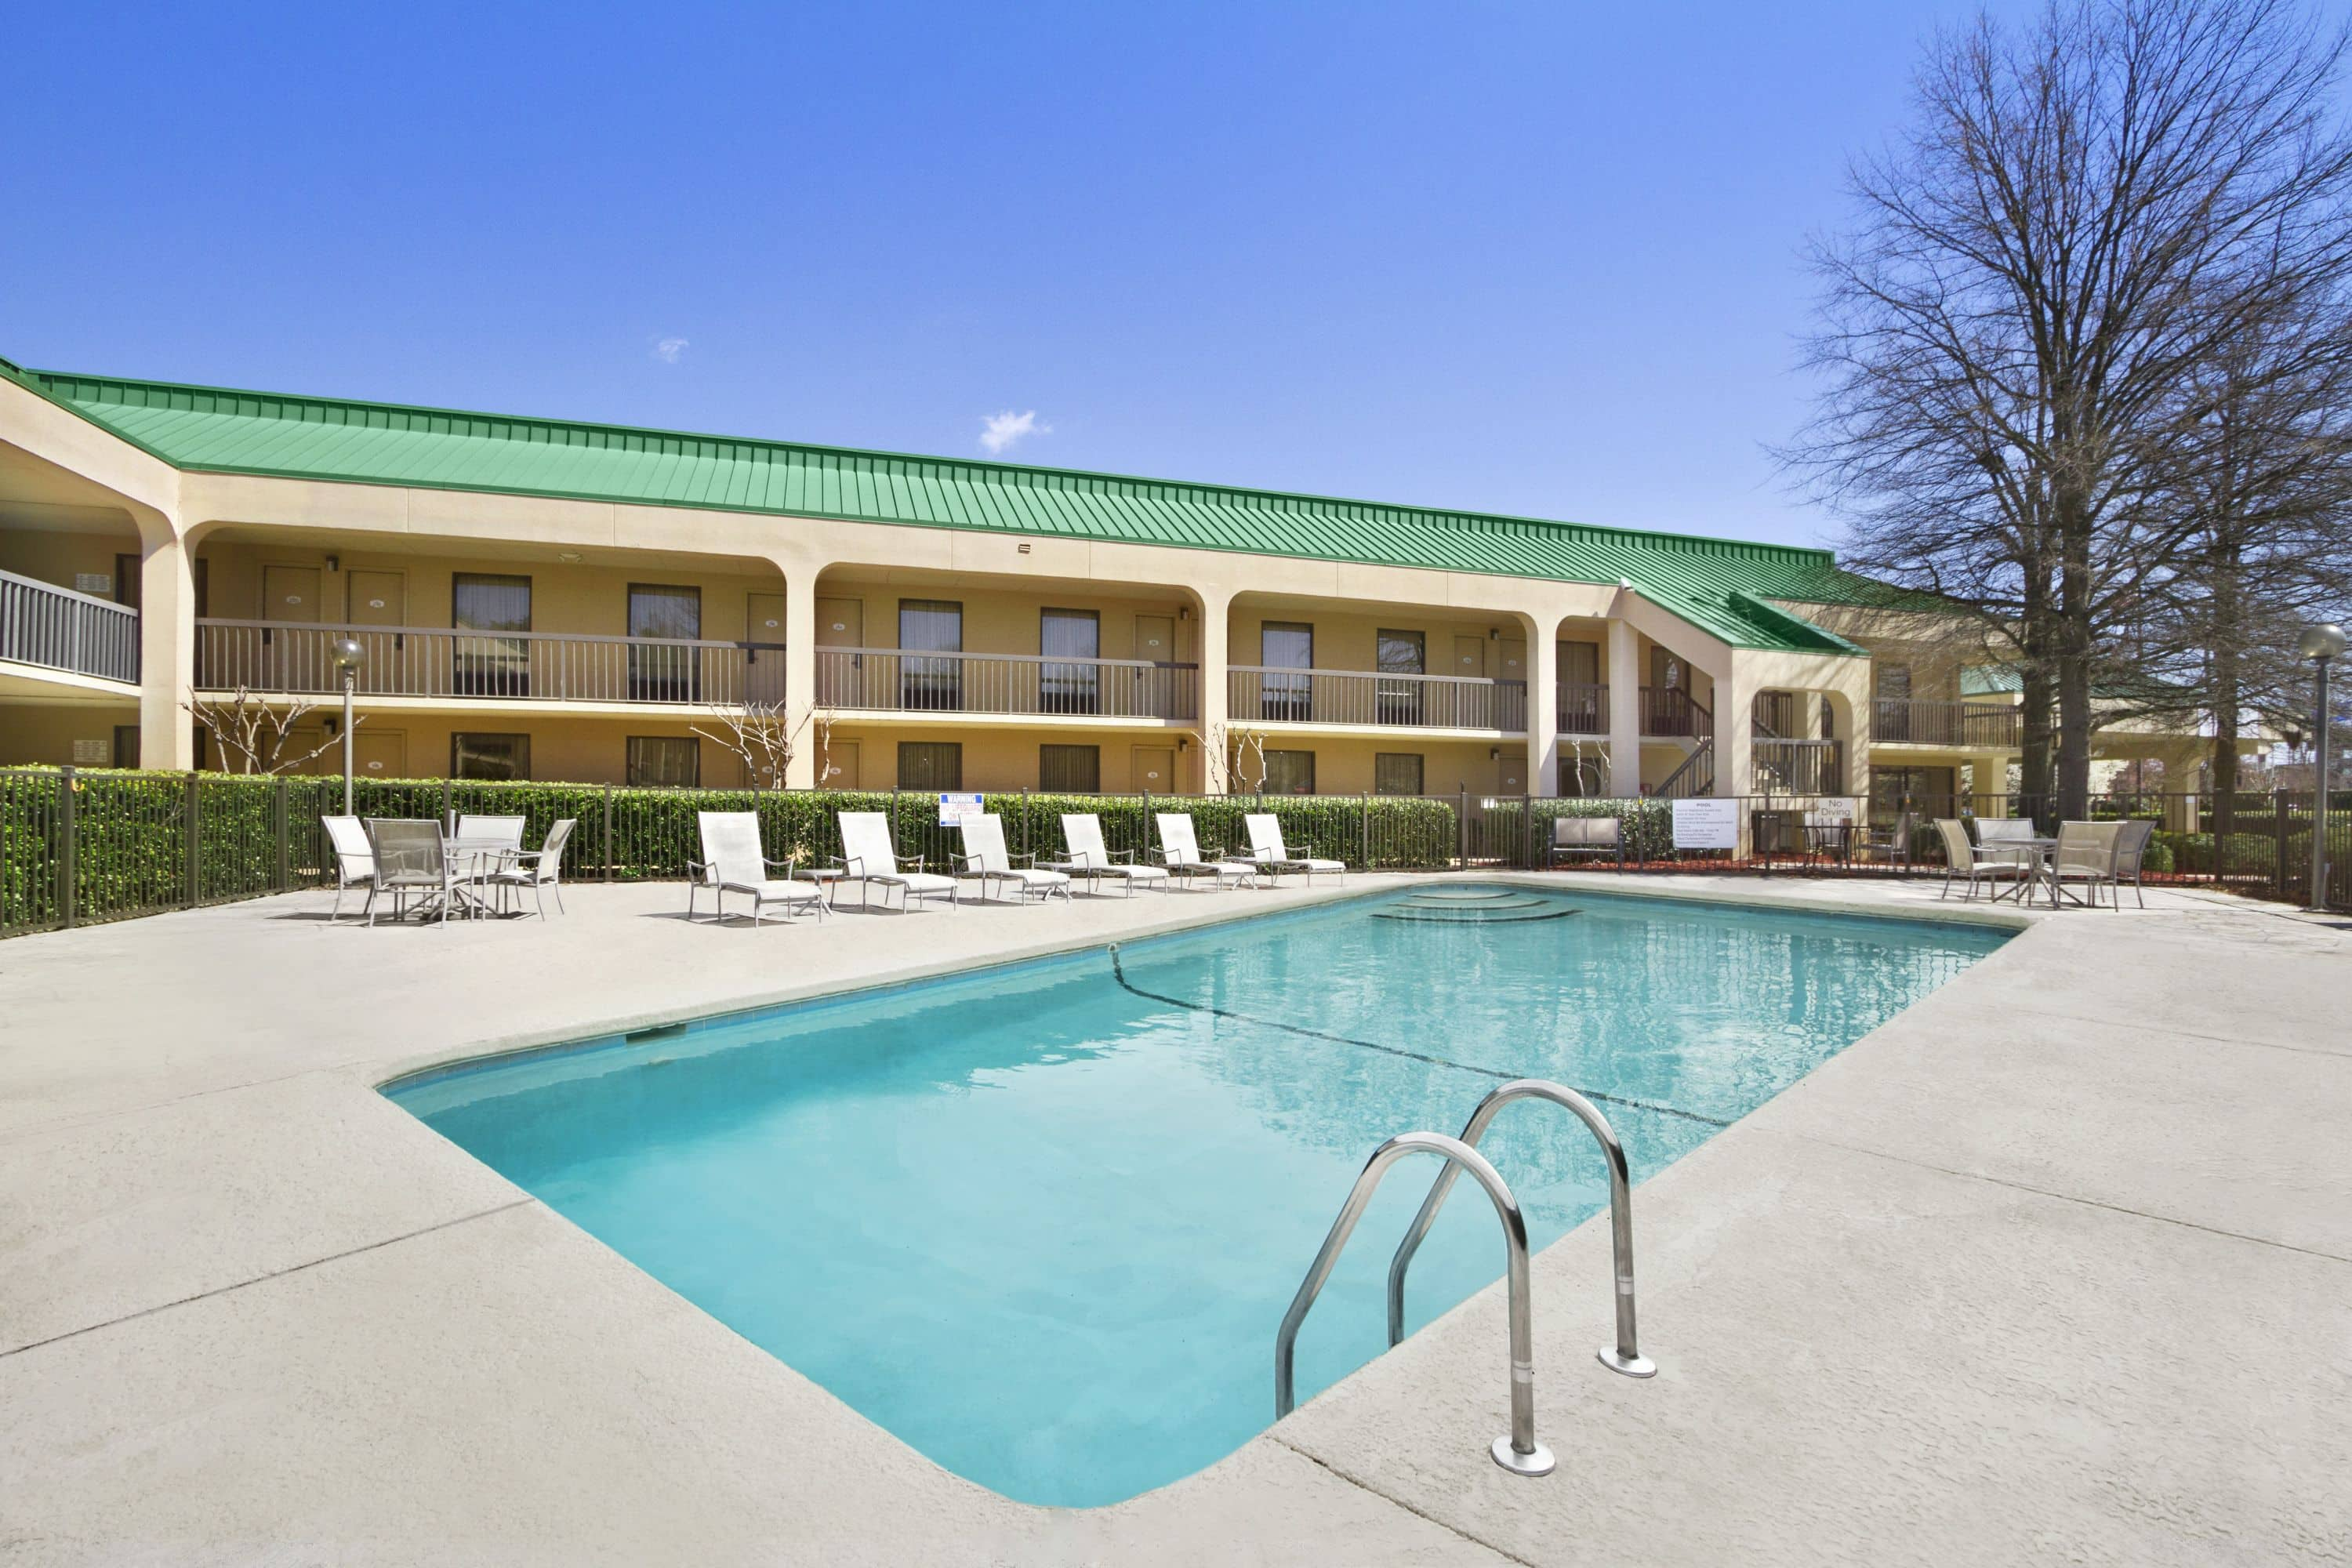 Hotels Near Asheboro Nc North Carolina In